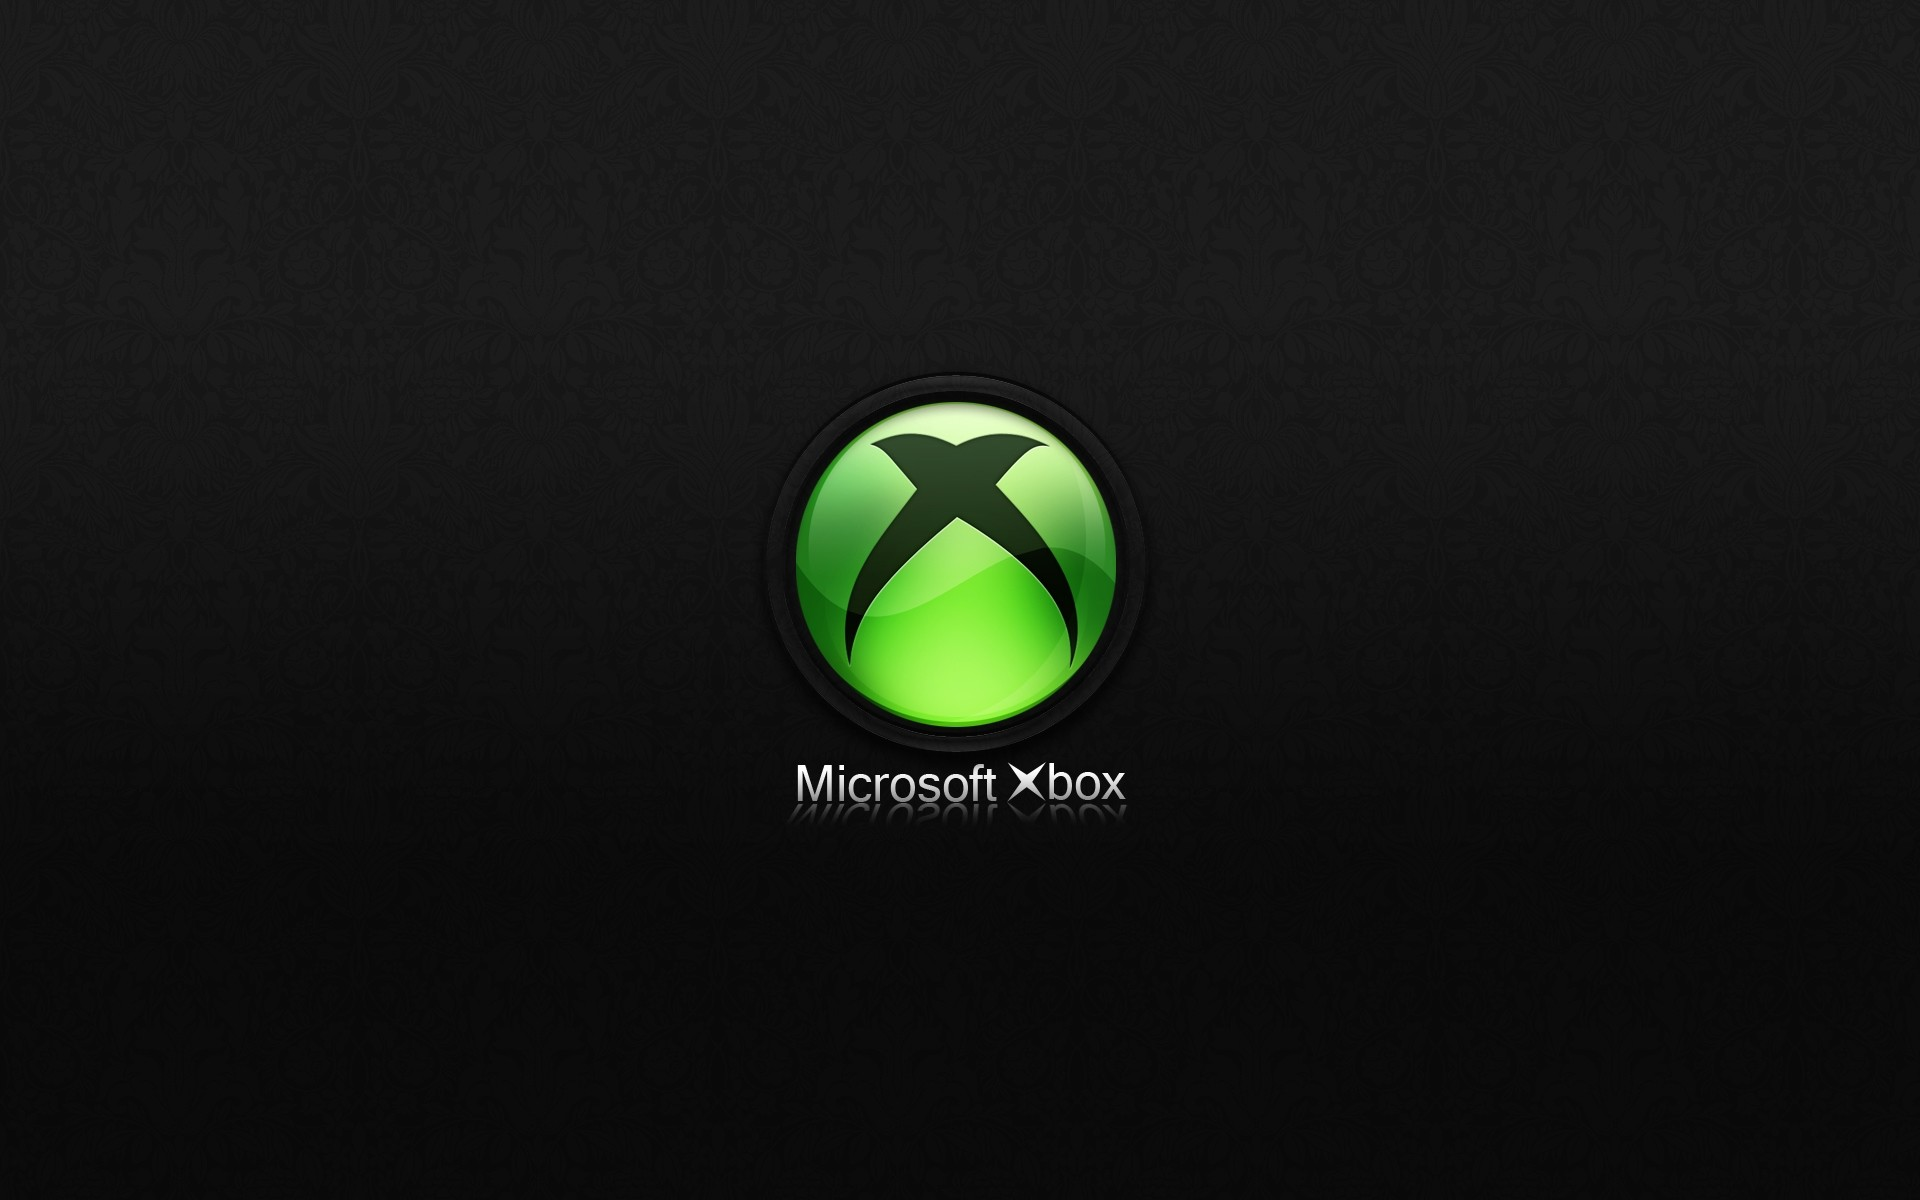 Xbox one logo wallpaper 77 images - Xbox one wallpaper 1920x1080 ...